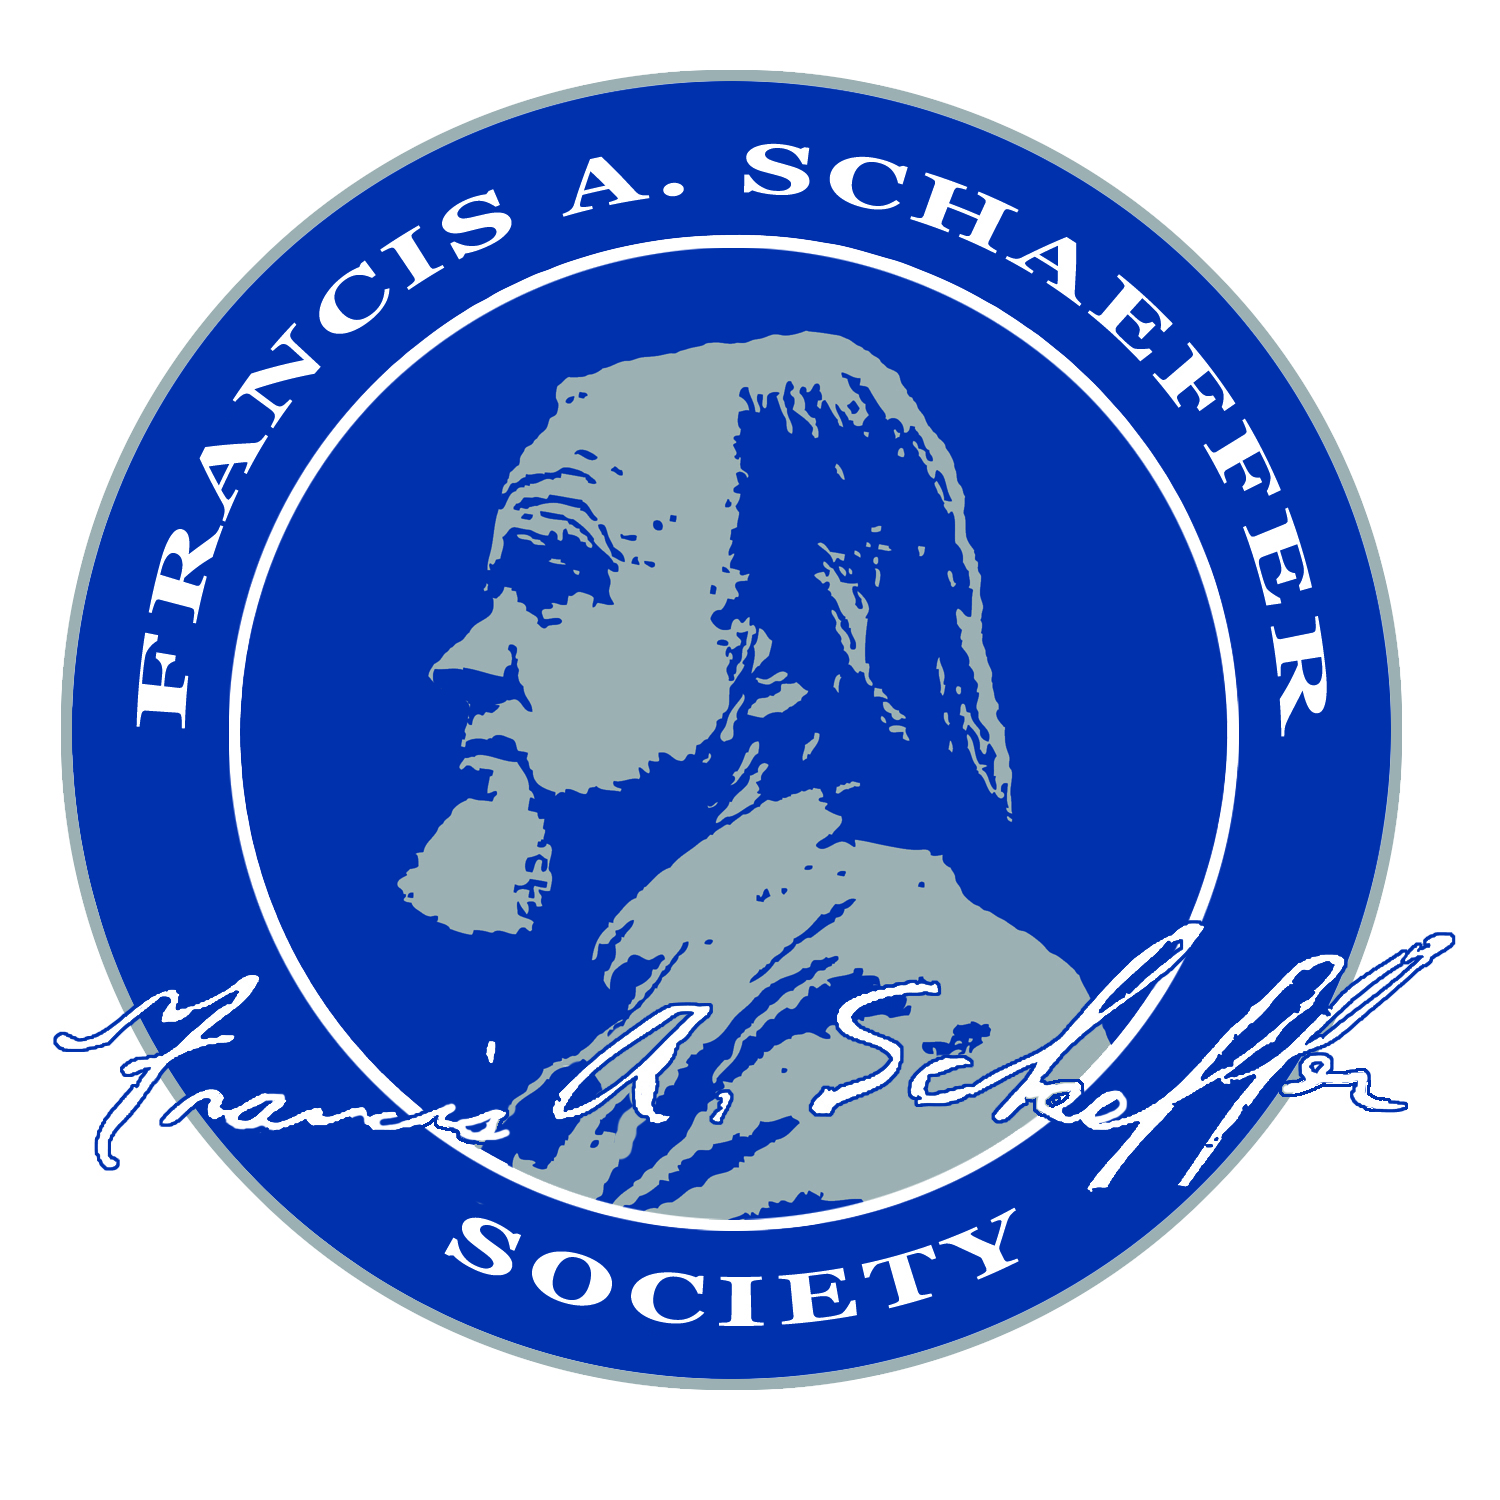 Where in the World is the Church? - Francis A. Schaeffer Society Reading Group Discussion of The Benedict Option